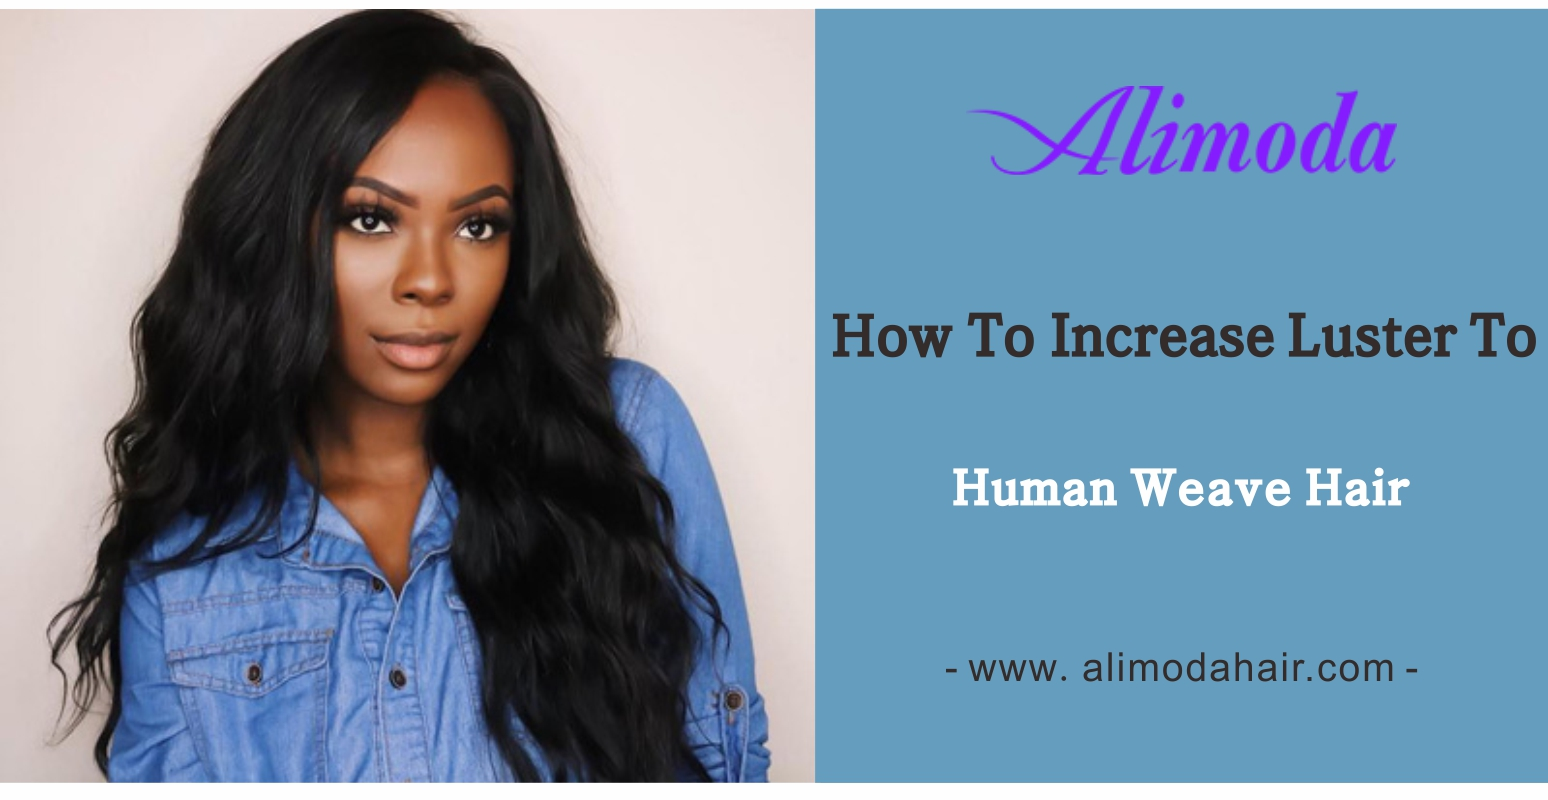 How to increase luster to human weave hair?